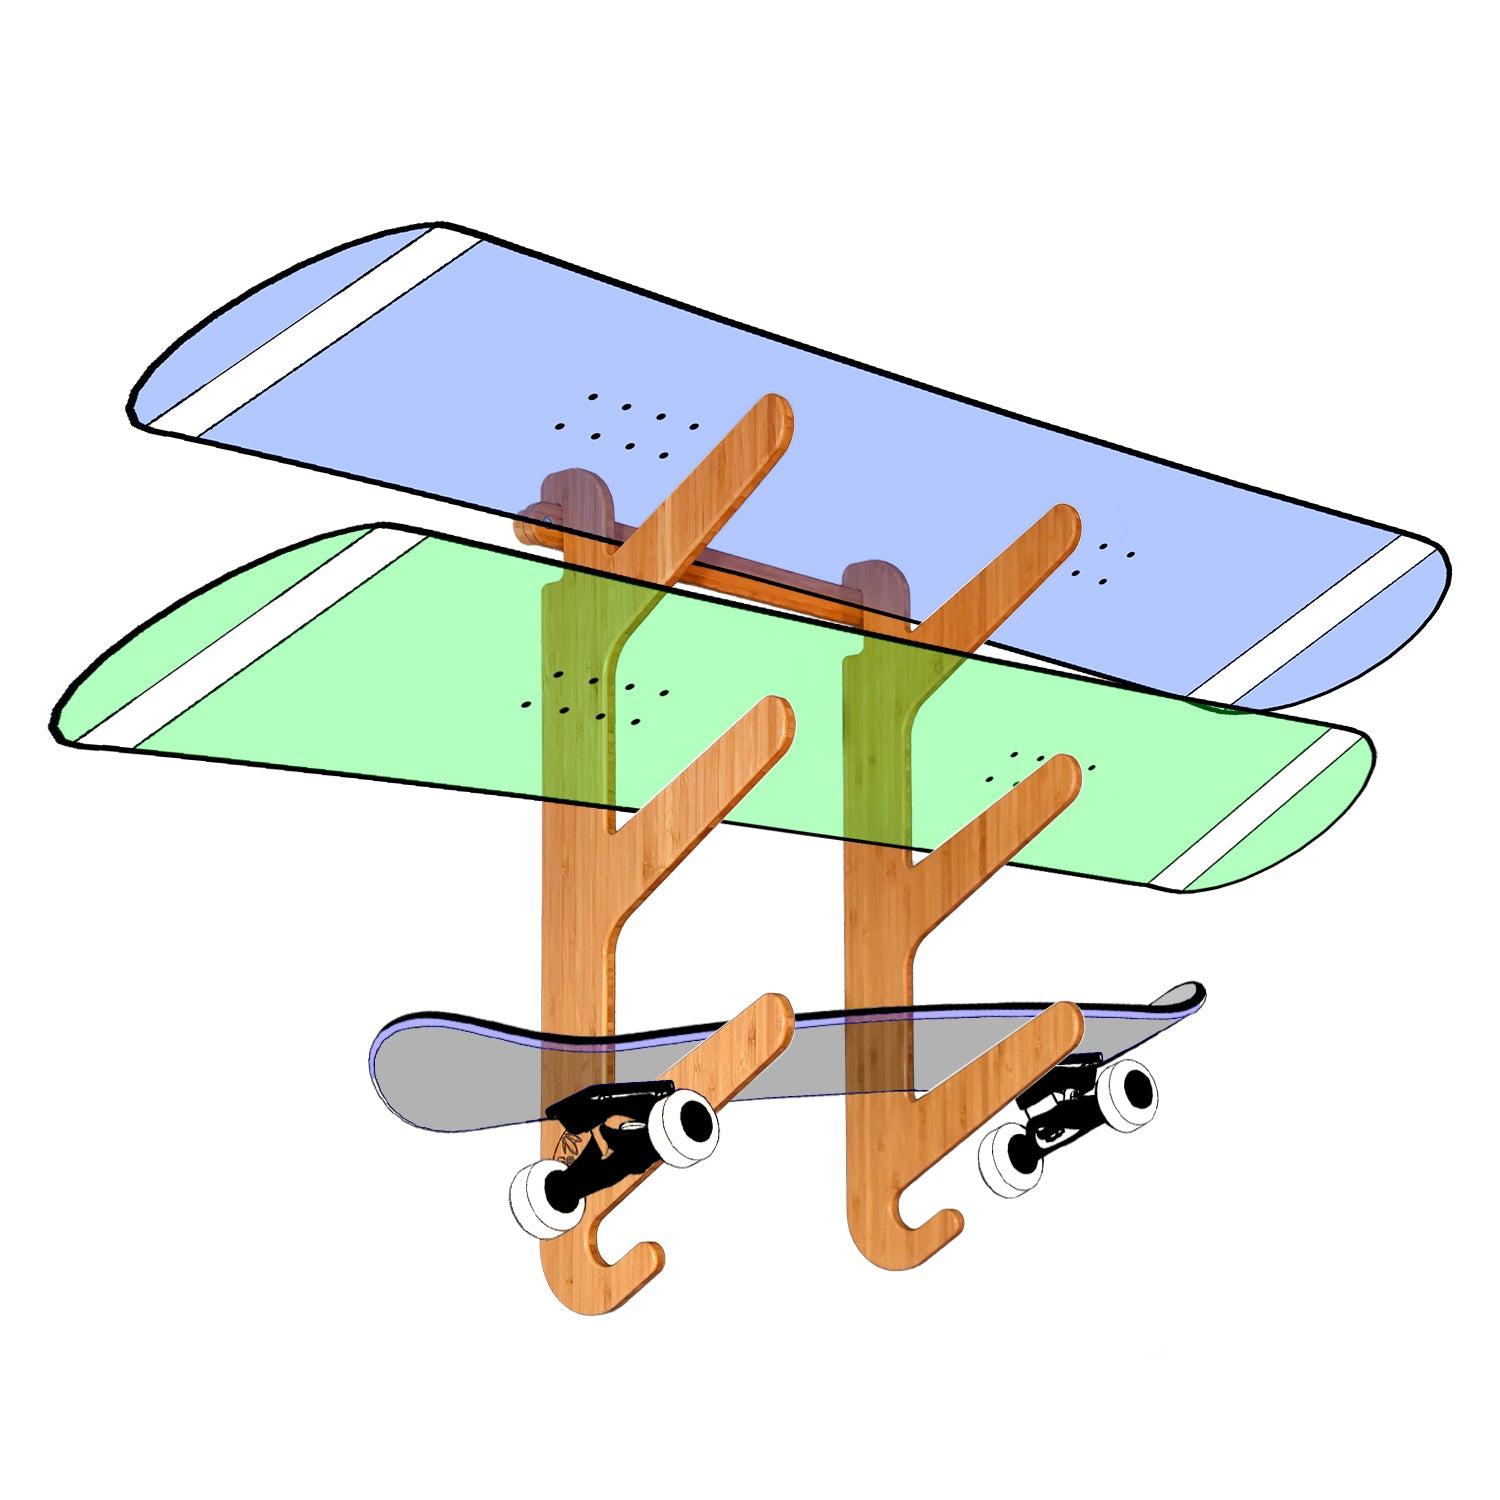 Bamboo Snowboard Rack - Snow & Skateboard Rack for Wall